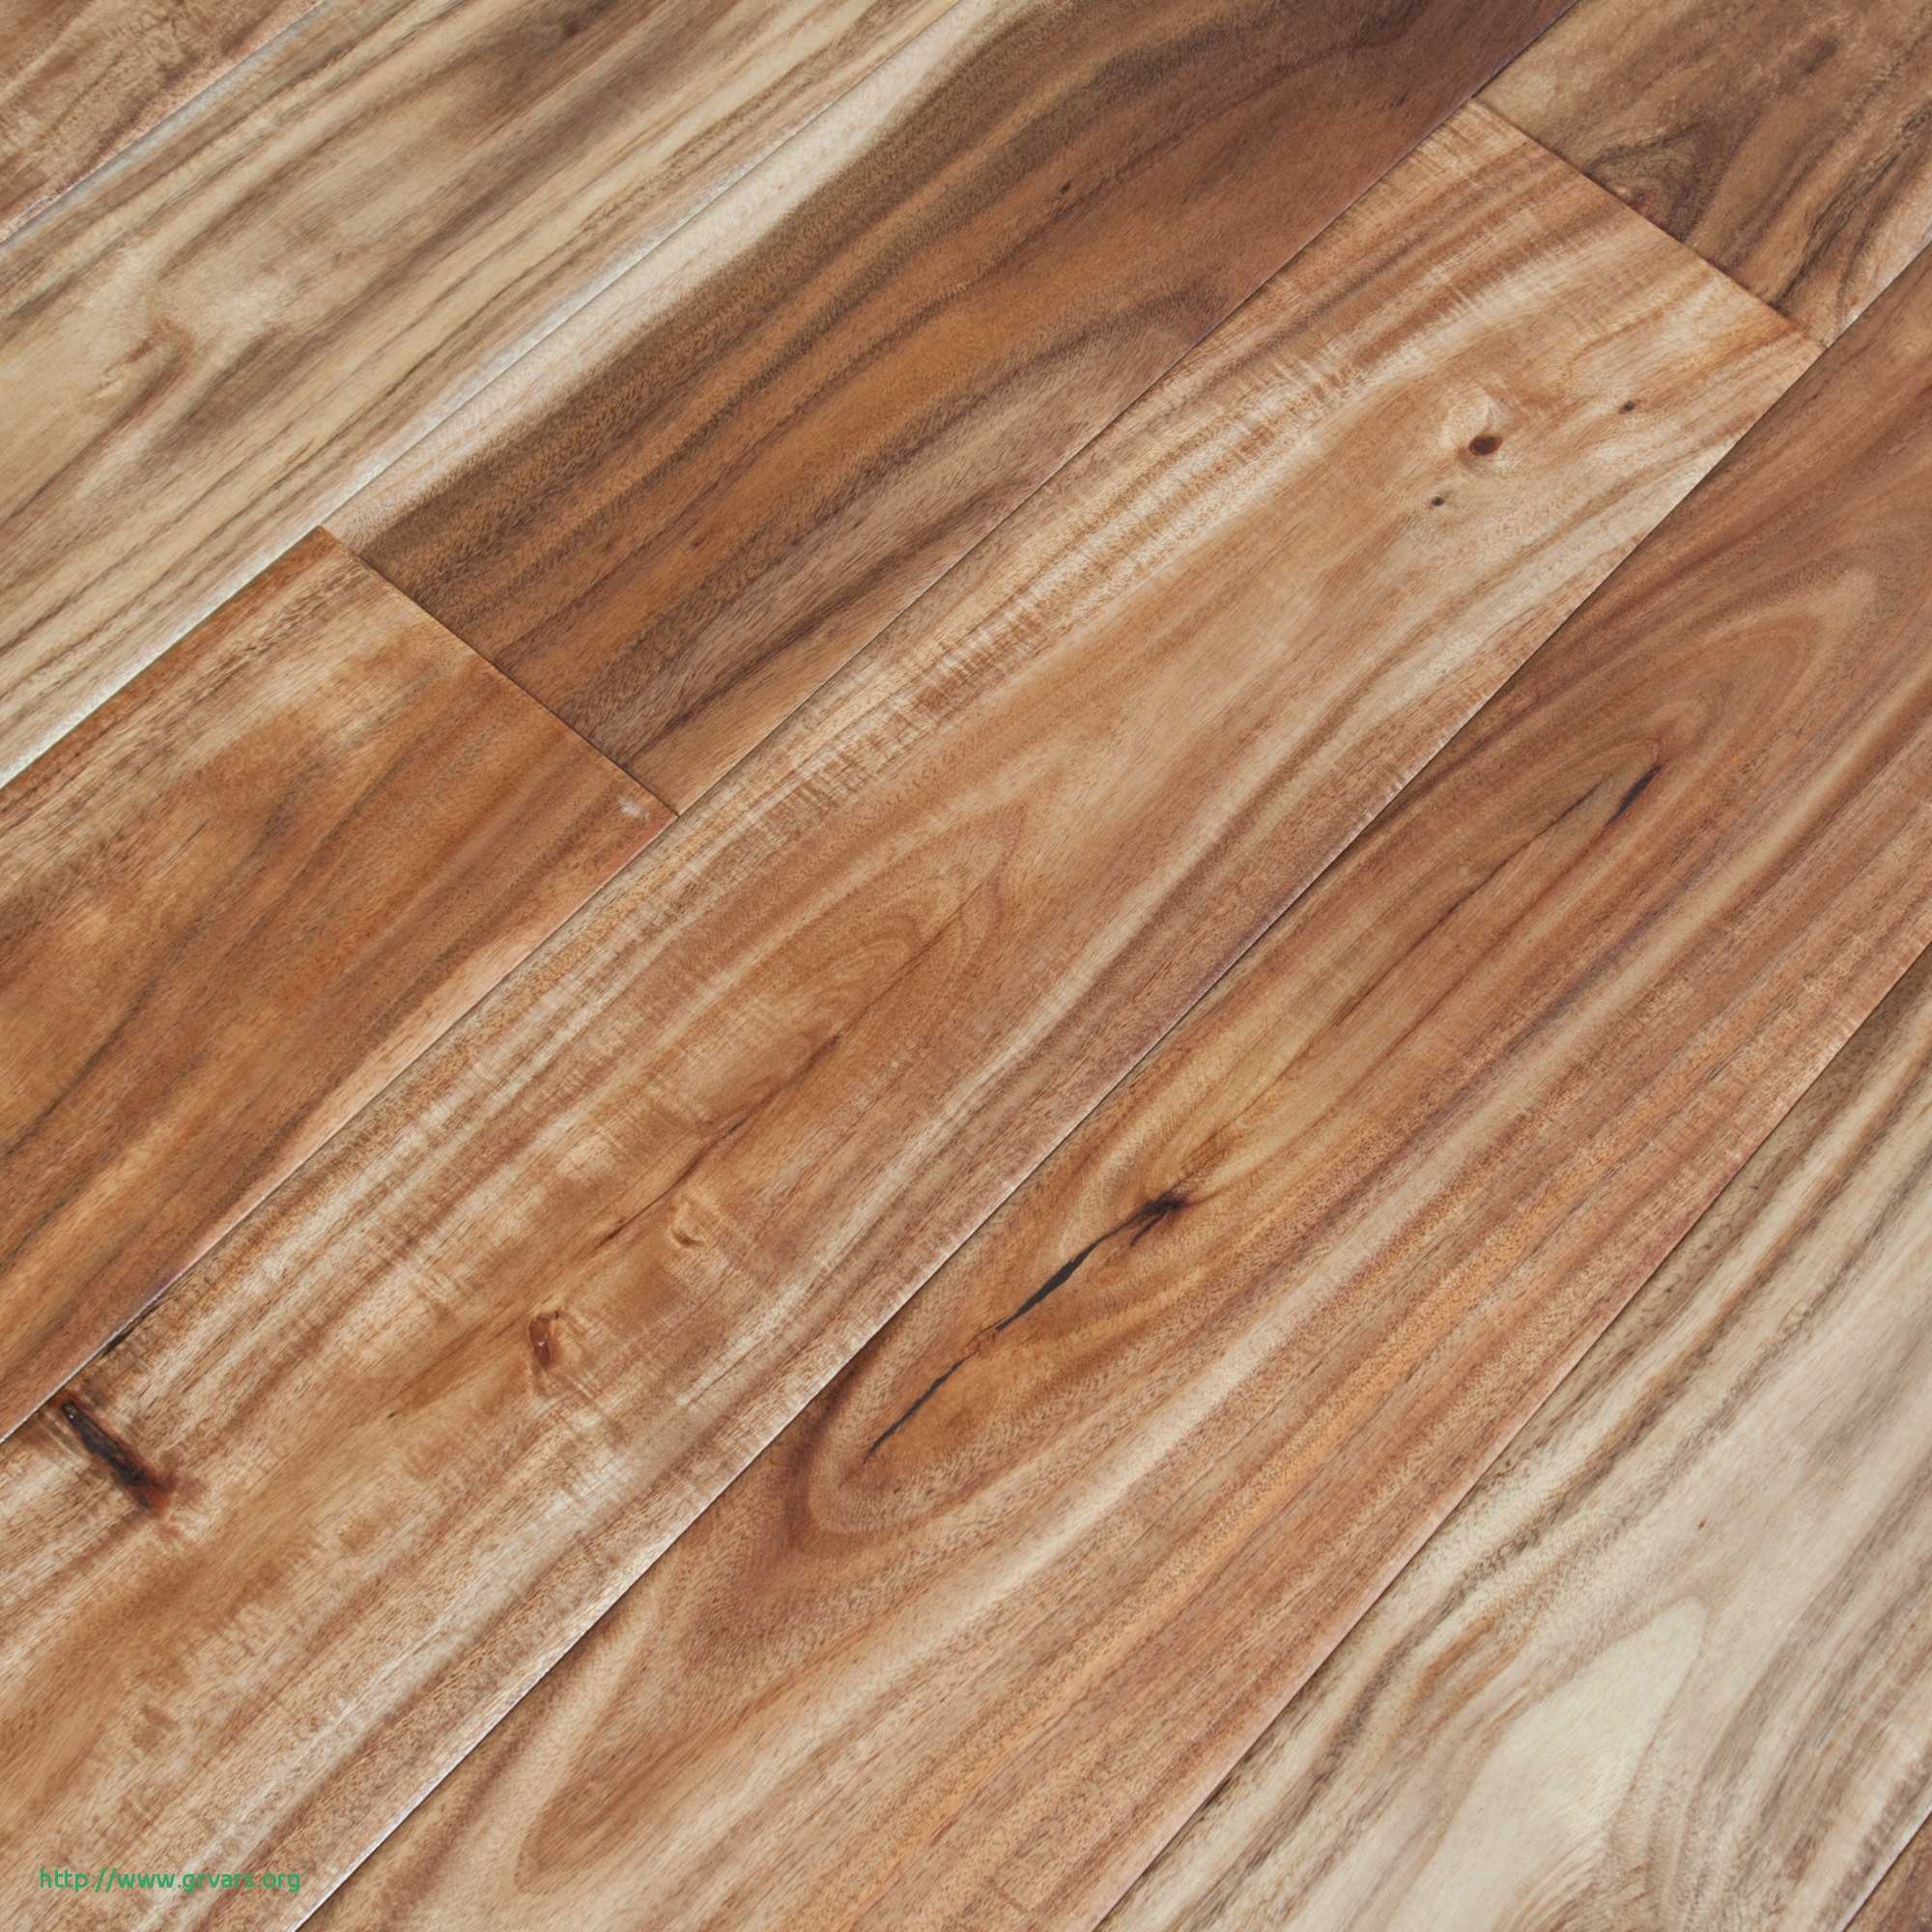 hardwood flooring mississauga of 28 new handscraped engineered hardwood photos flooring design ideas with regard to handscraped engineered hardwood elegant hardwood floor plank sizes frais why your engineered wood flooring images of